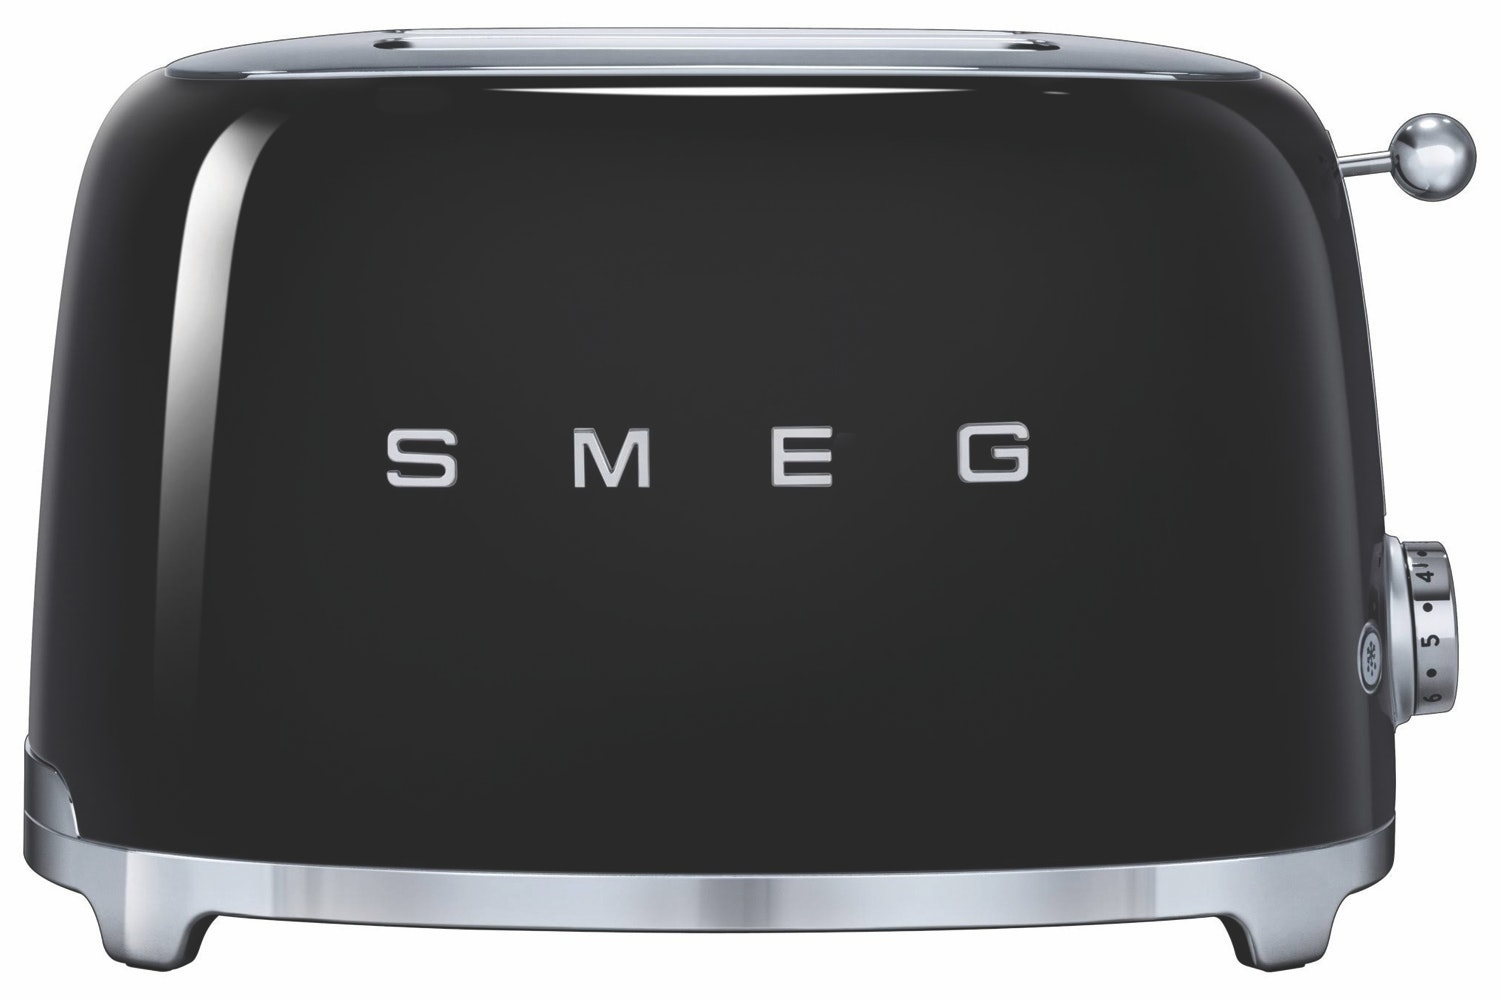 Smeg Retro 2 Slice Toaster | Black